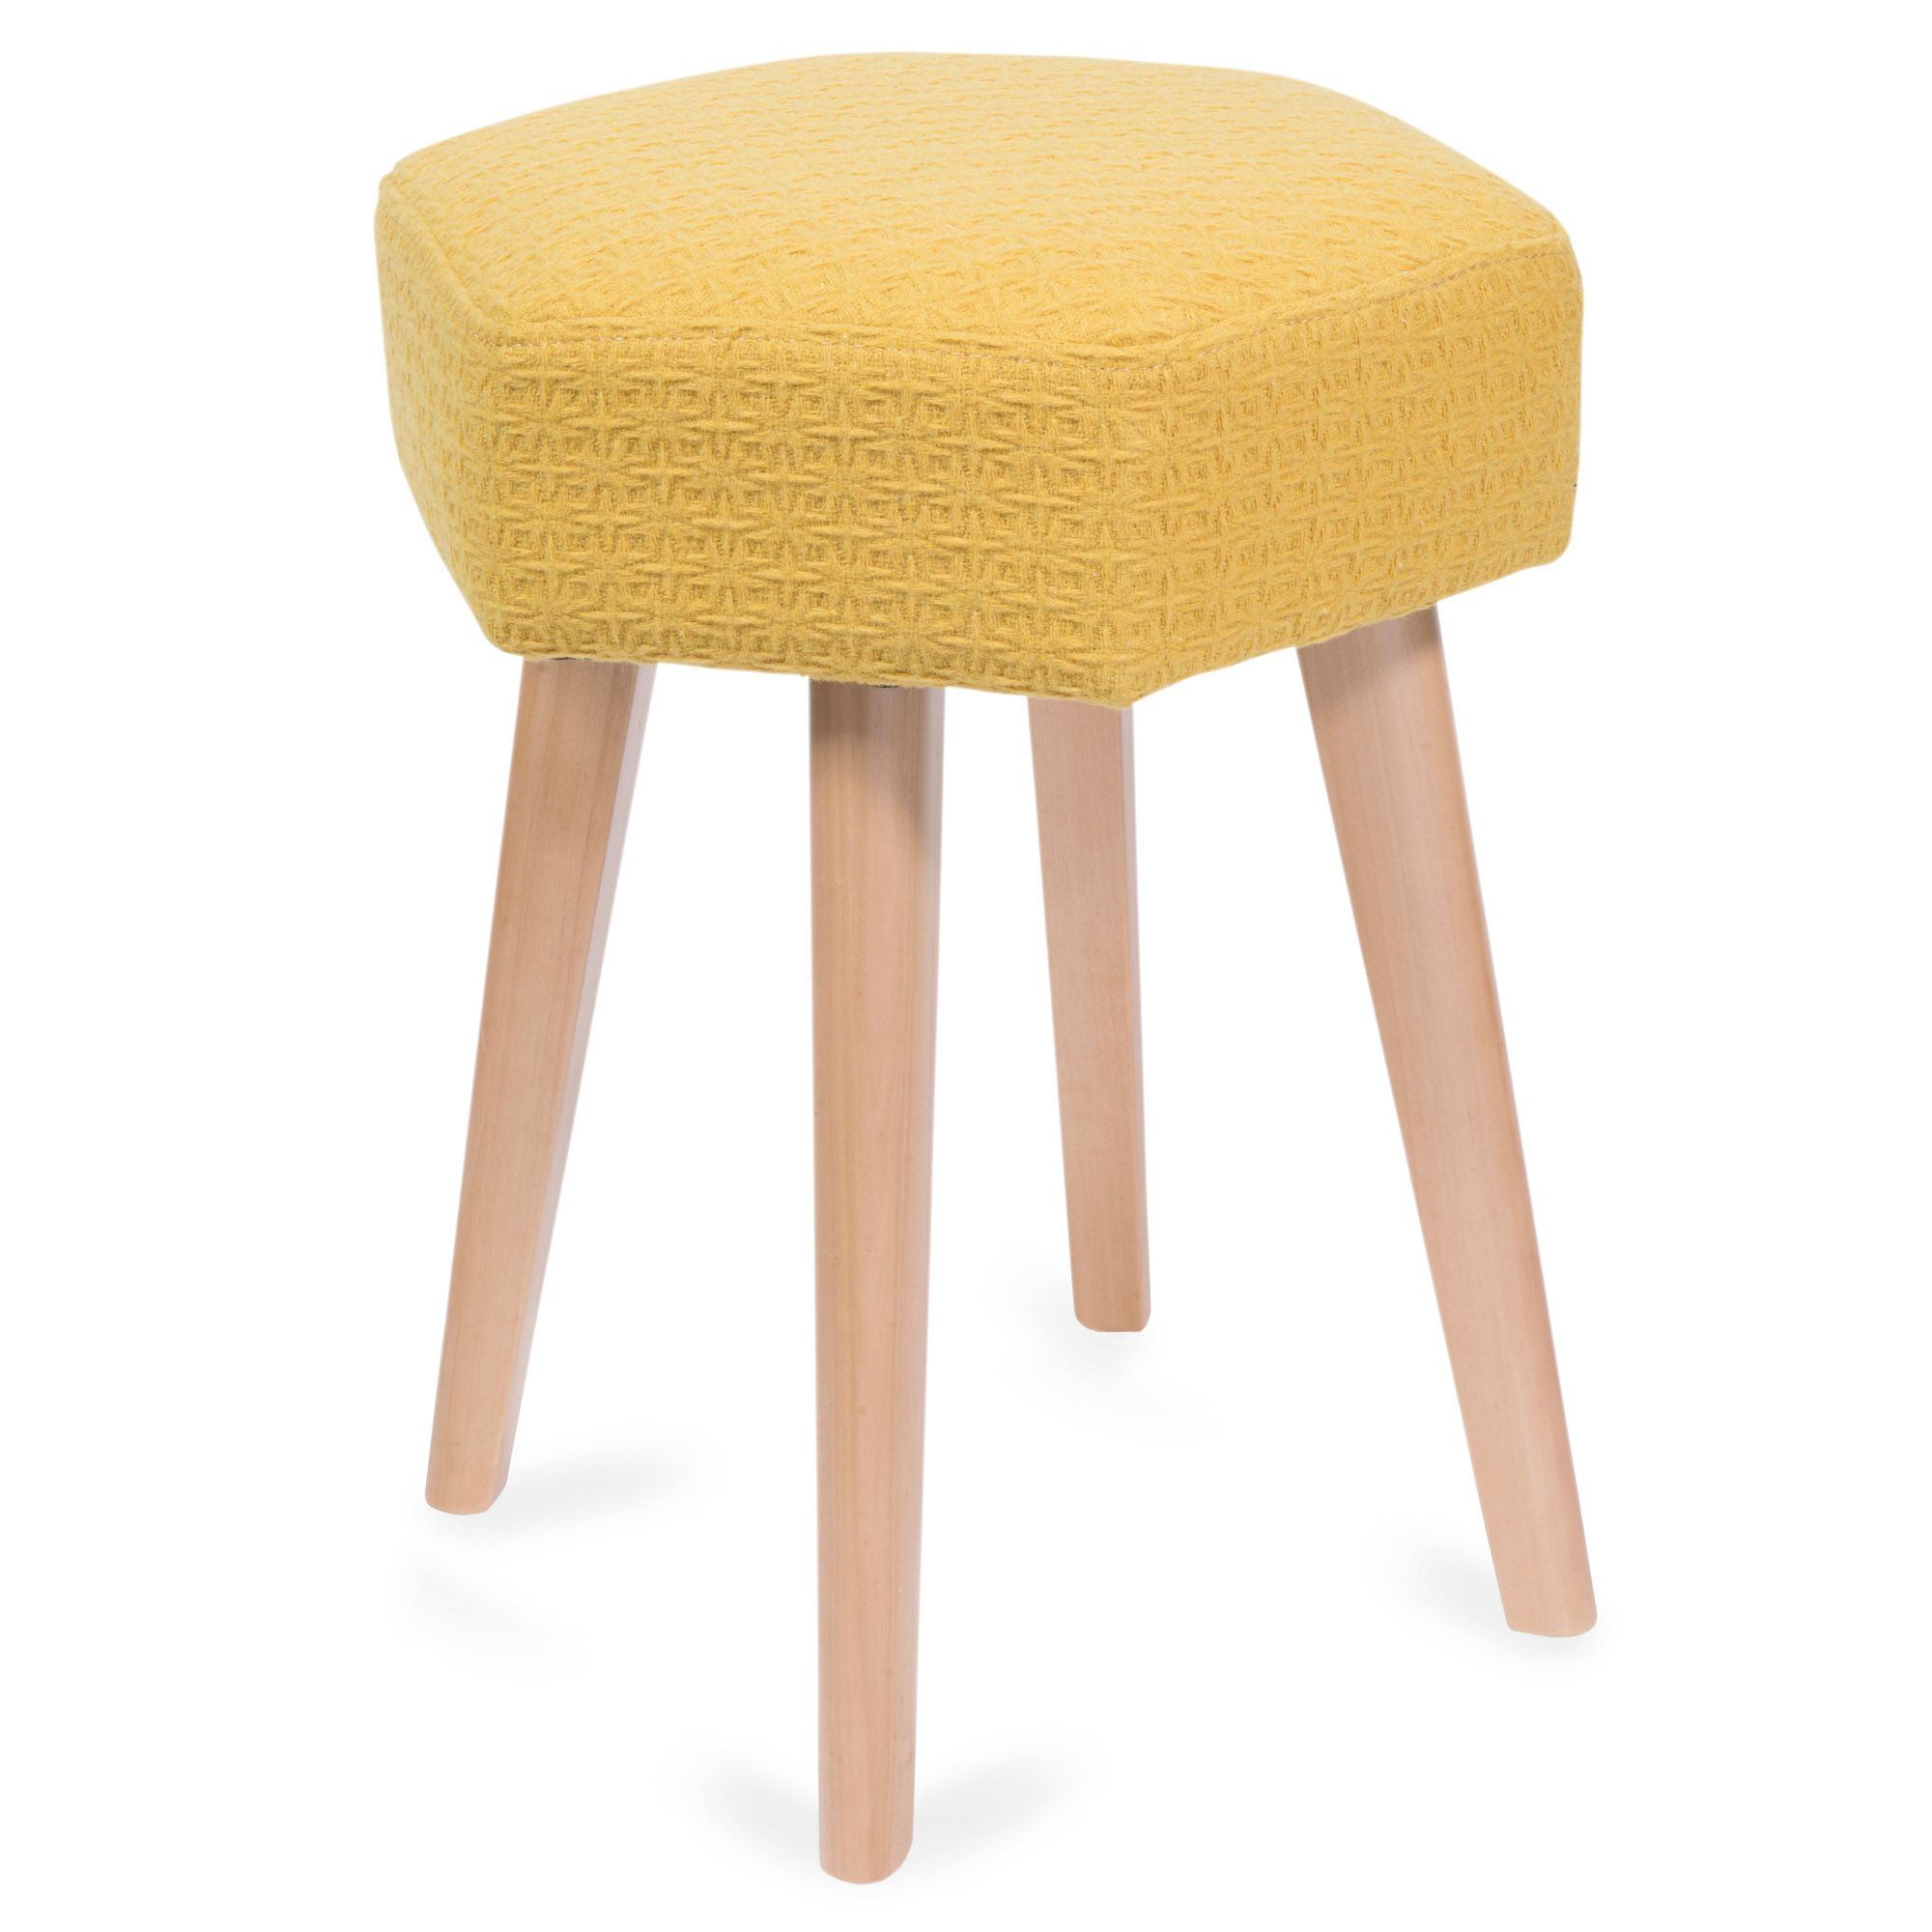 maisons du monde offers a large selection of stools for your home find wooden stools kitchen and bedroom stools and more in vintage and